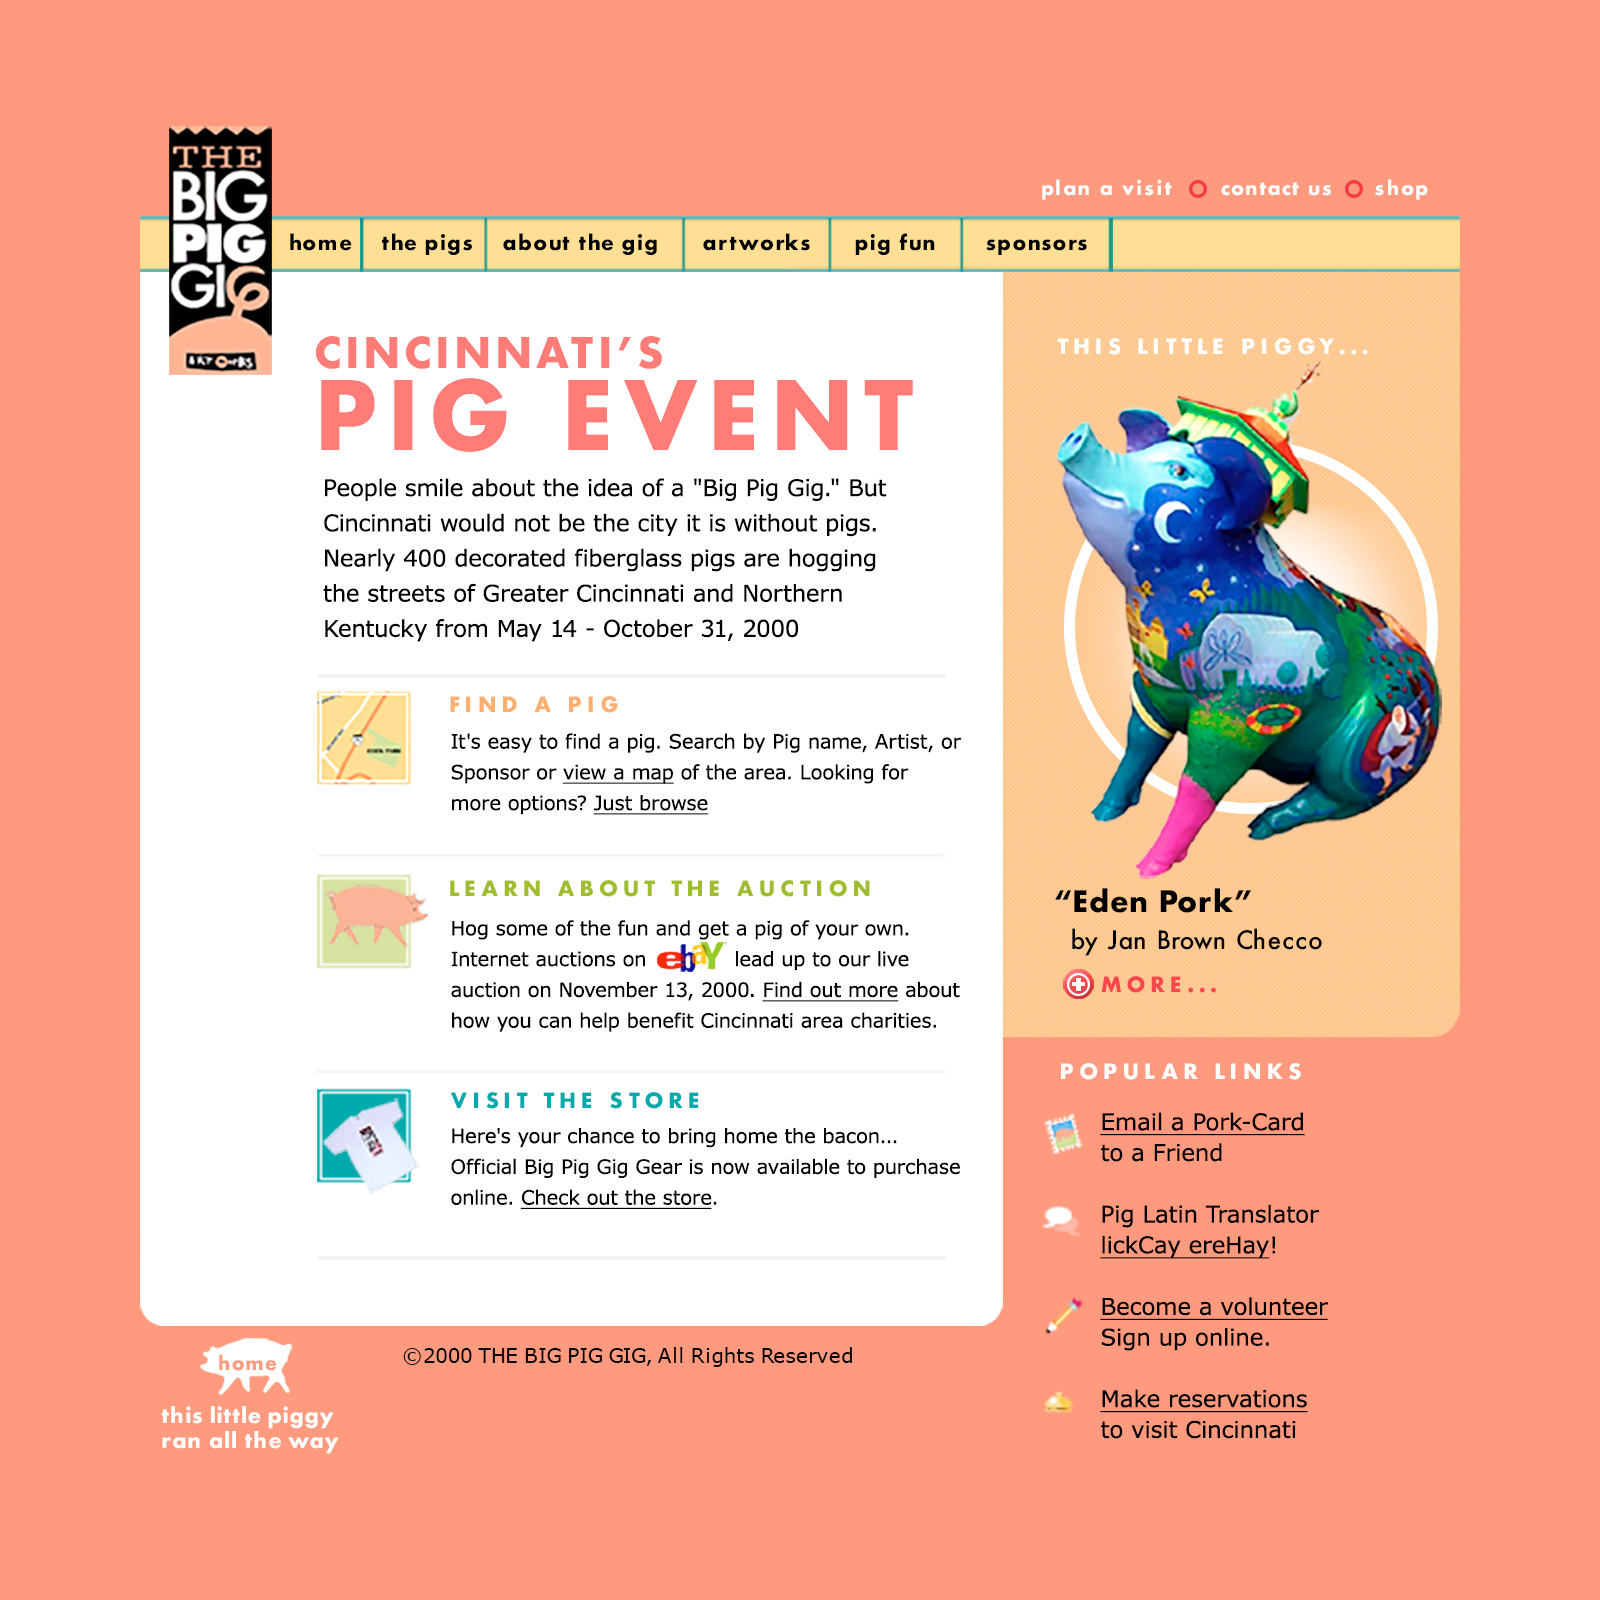 The Big Pig Gig website from the year 2000